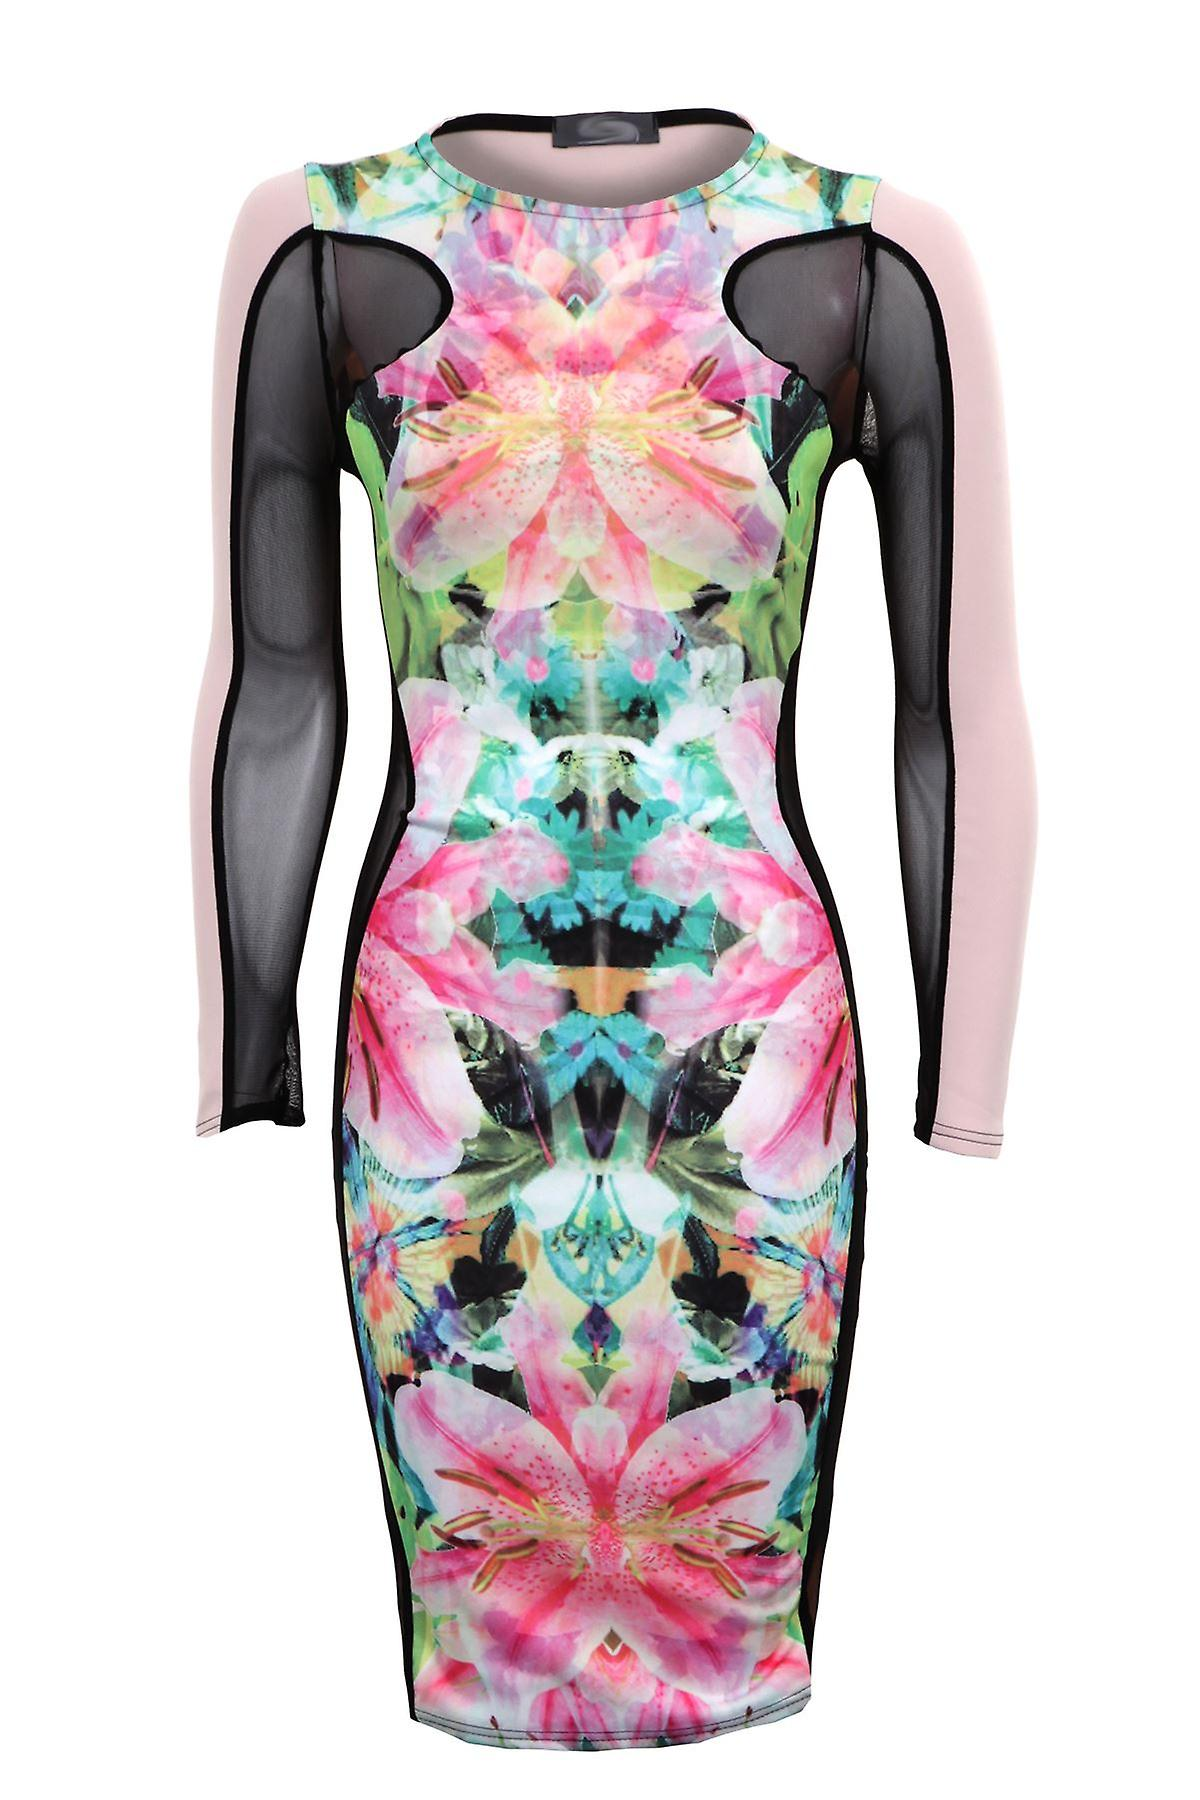 New Ladies Long Mesh Sleeves Floral Print Women's Bodycon Dress